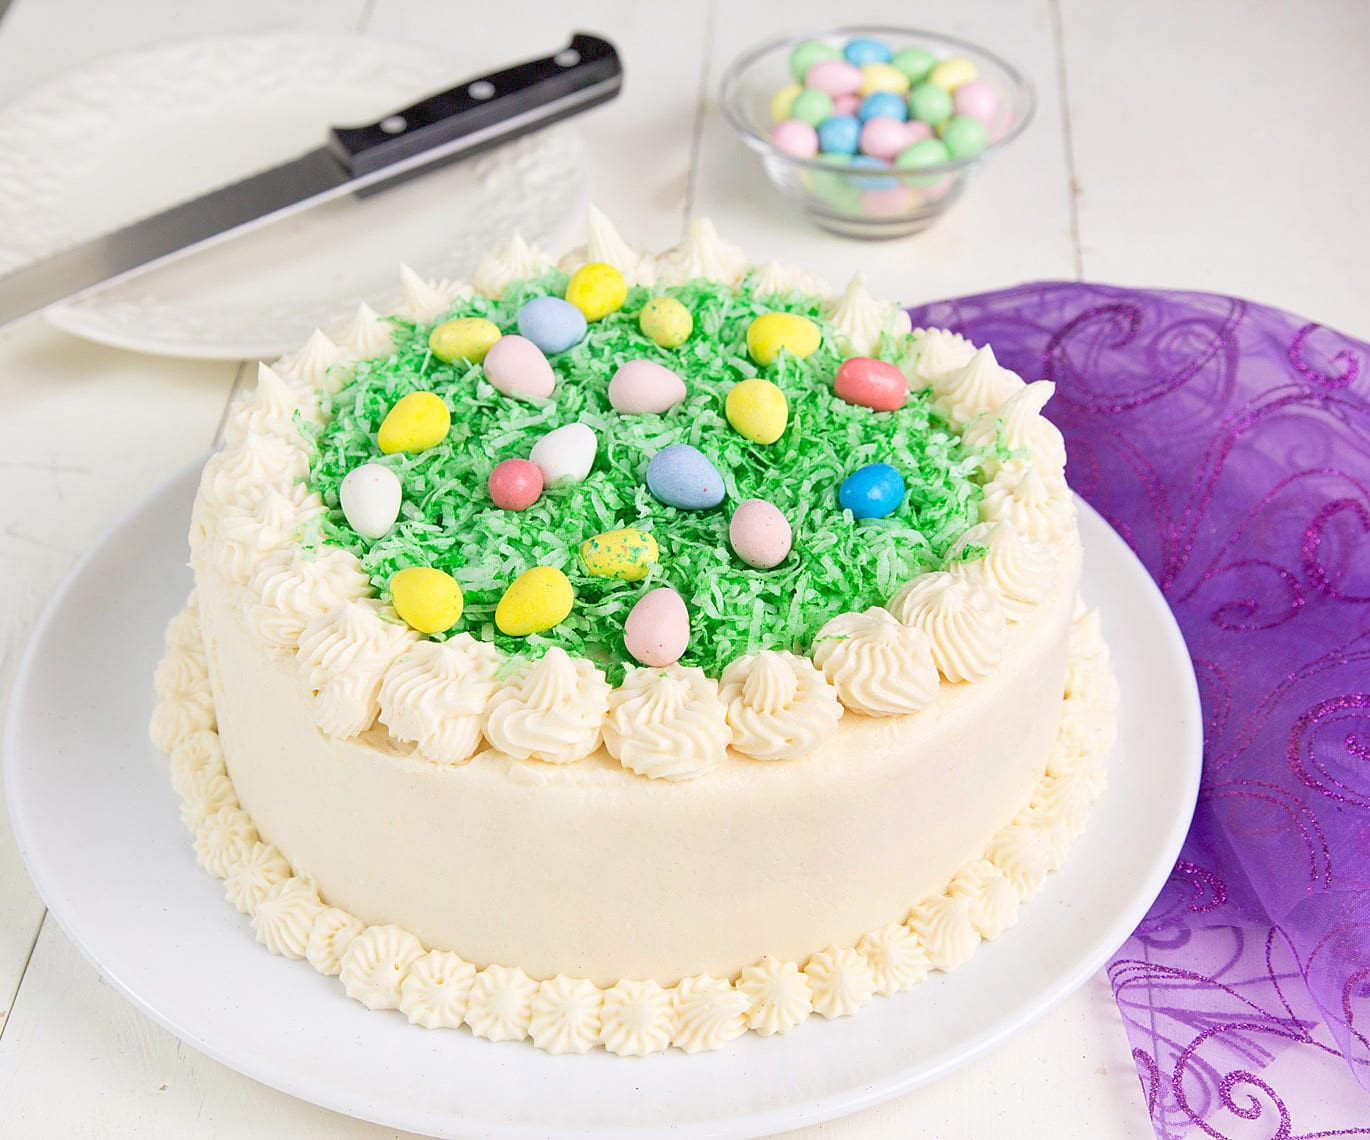 Easter Coconut Cake  My Coconut Easter Cake Recipe Tips and Tricks Chef Dennis